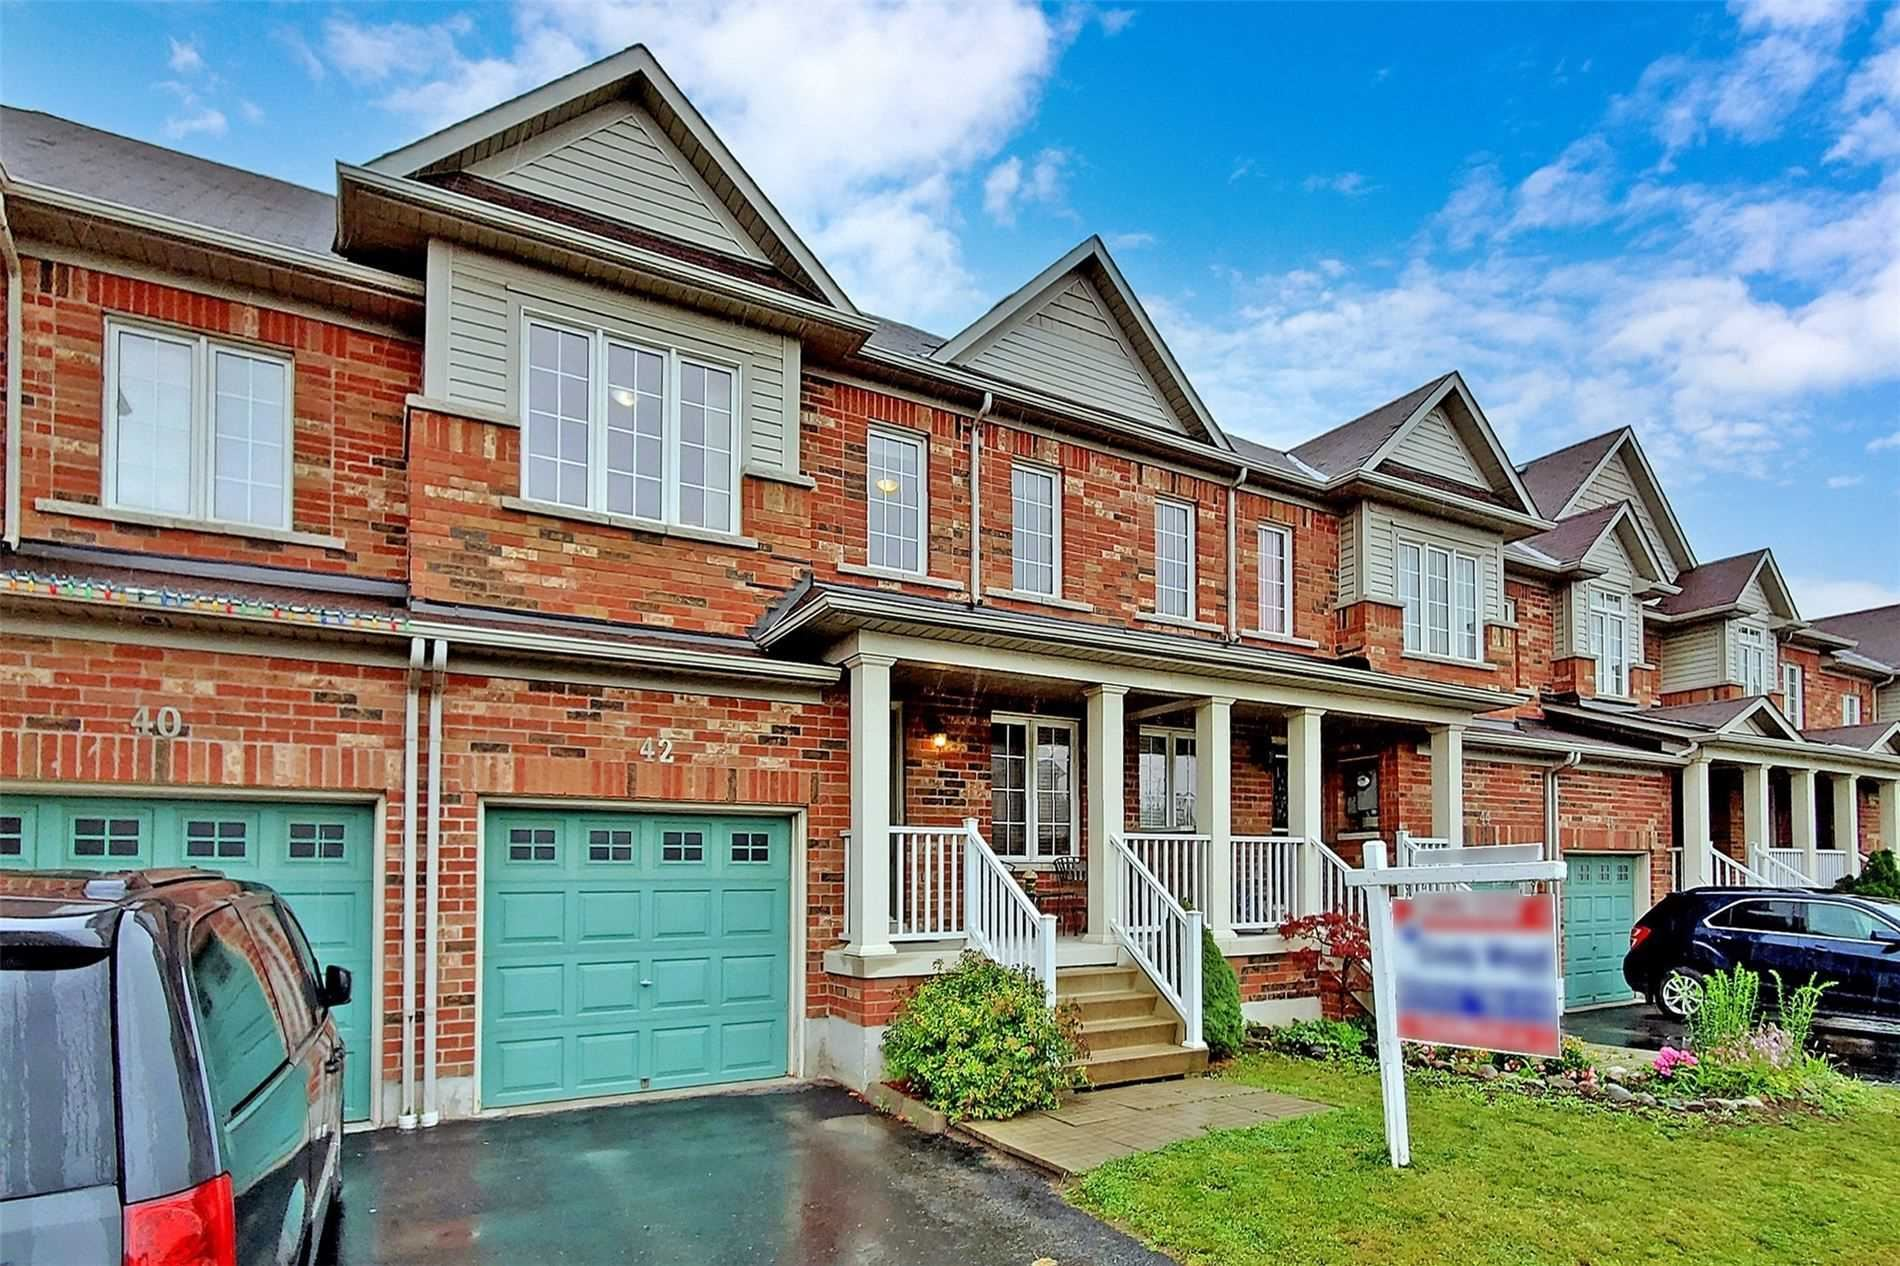 Photo of 42 Booker Dr, Ajax, ON L1Z0H4 (MLS # E5324161)